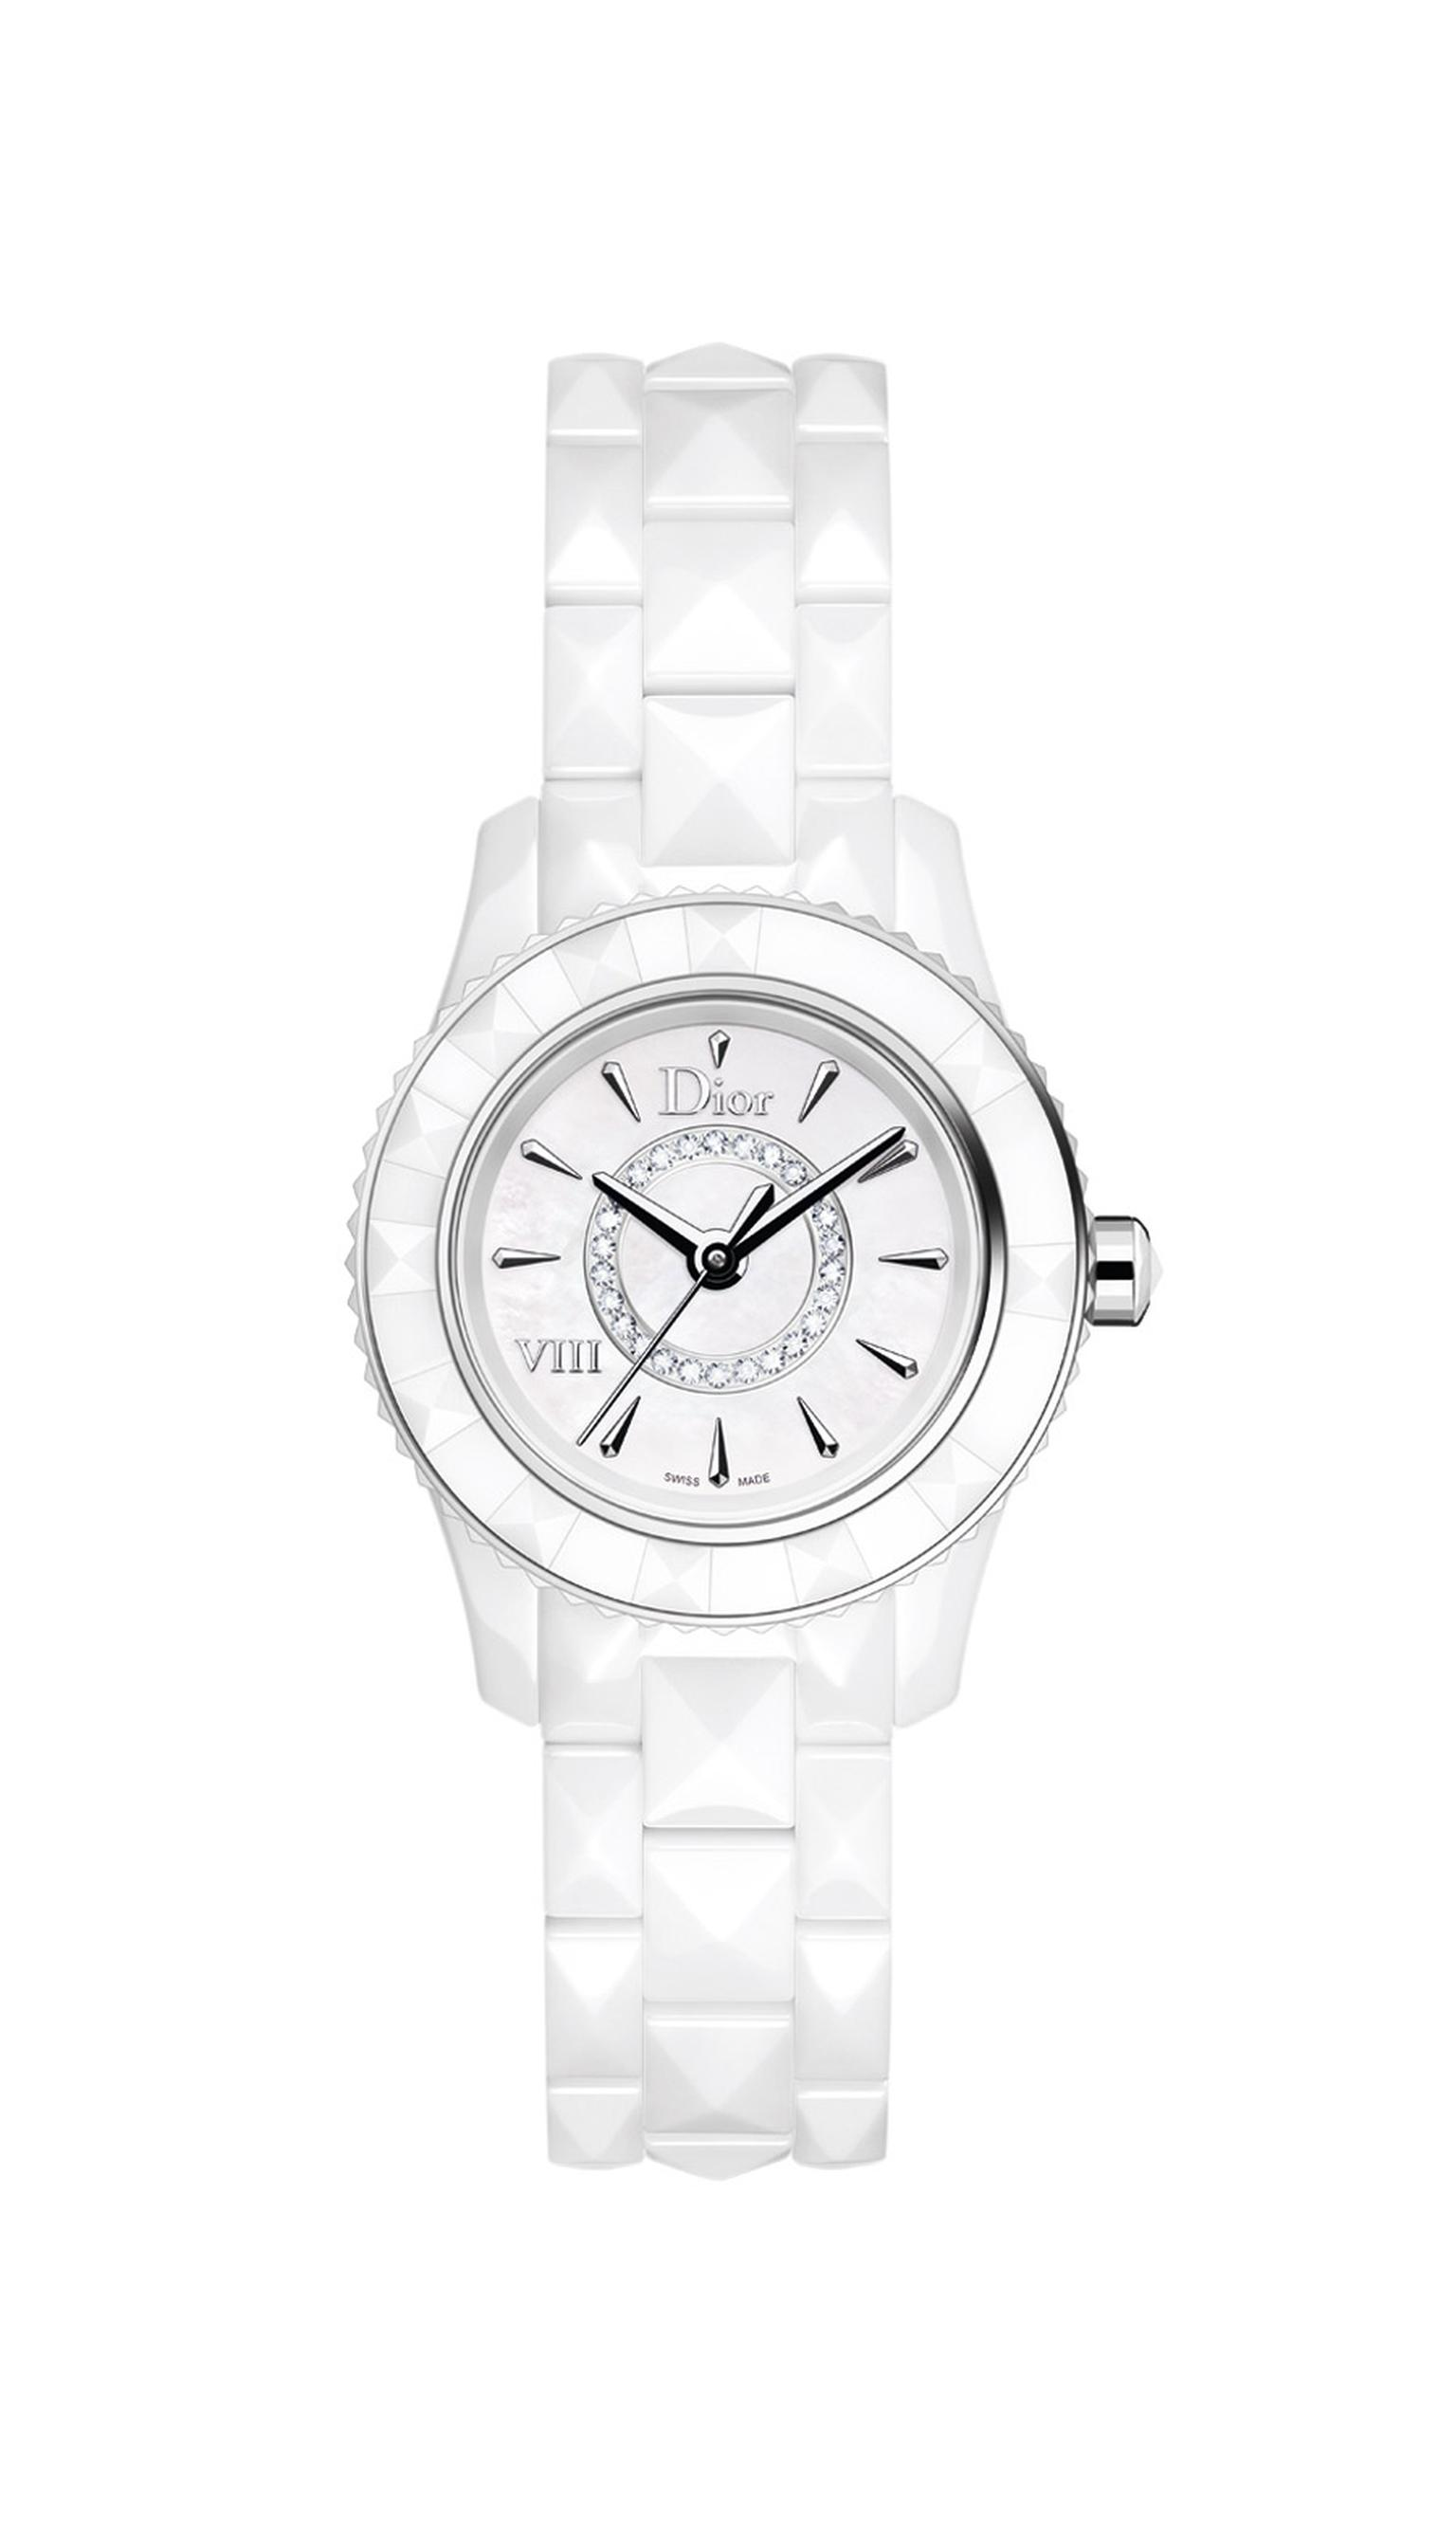 DIOR-VIII-WHITE-QUARTZ-MOTHER-OF-PEARL-DIAMOND-SET-DIAL-28mm